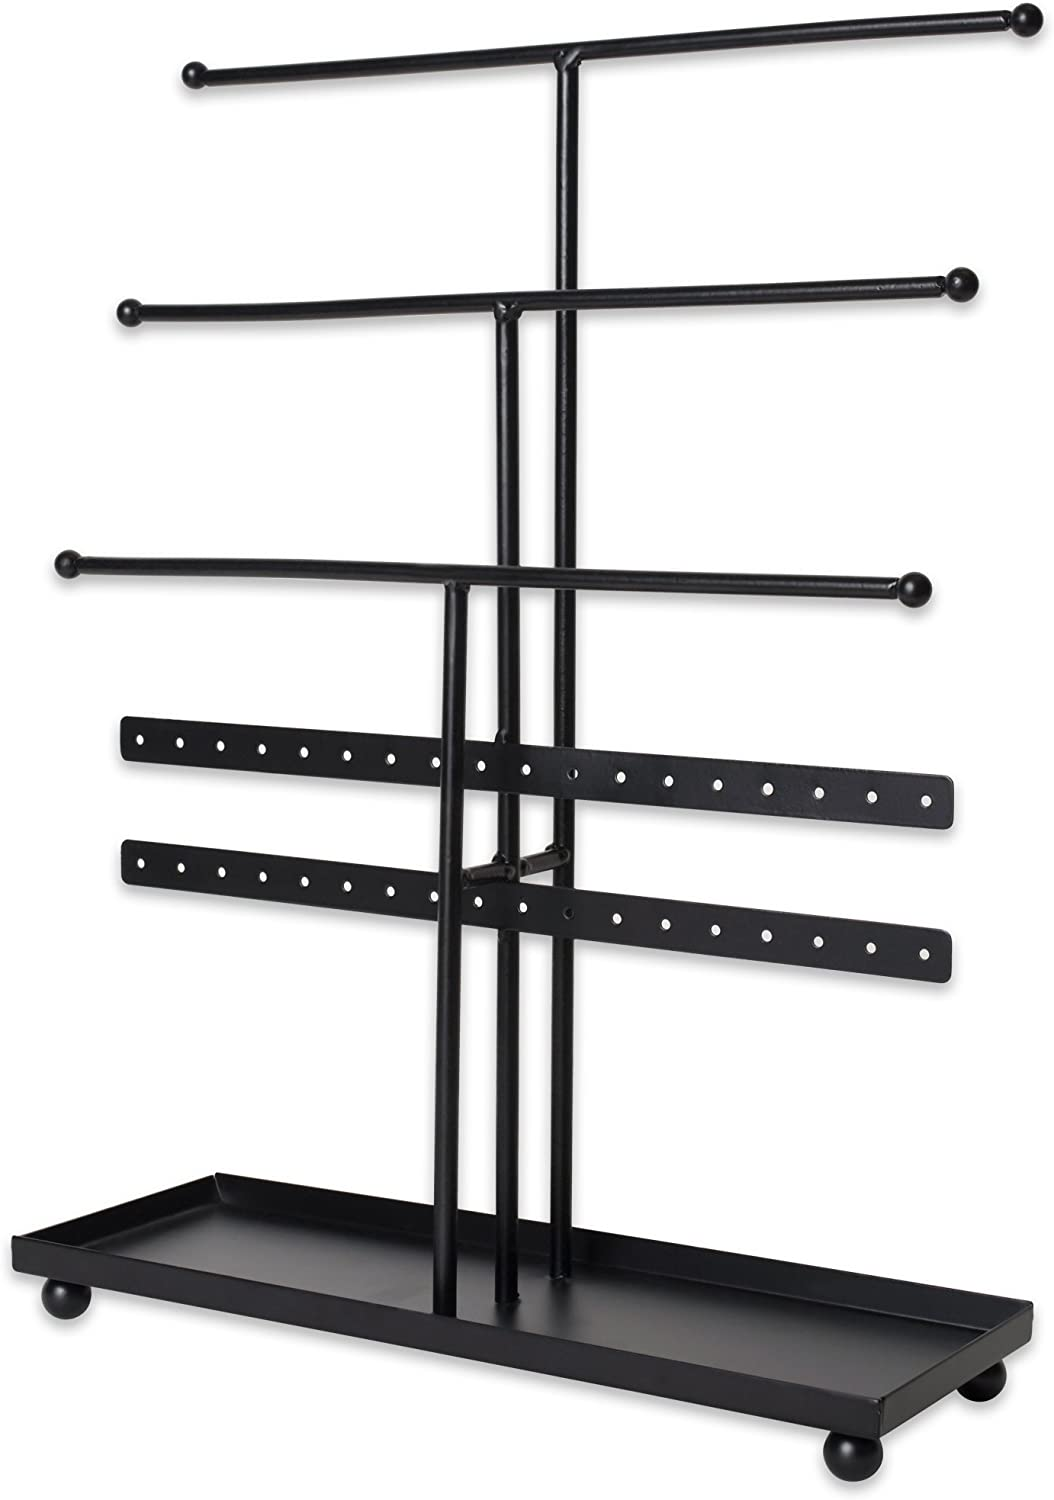 Home Traditions Z01647 Tree Tower, 3 Tier Metal with Modern Look and Jewelry Organization, Black